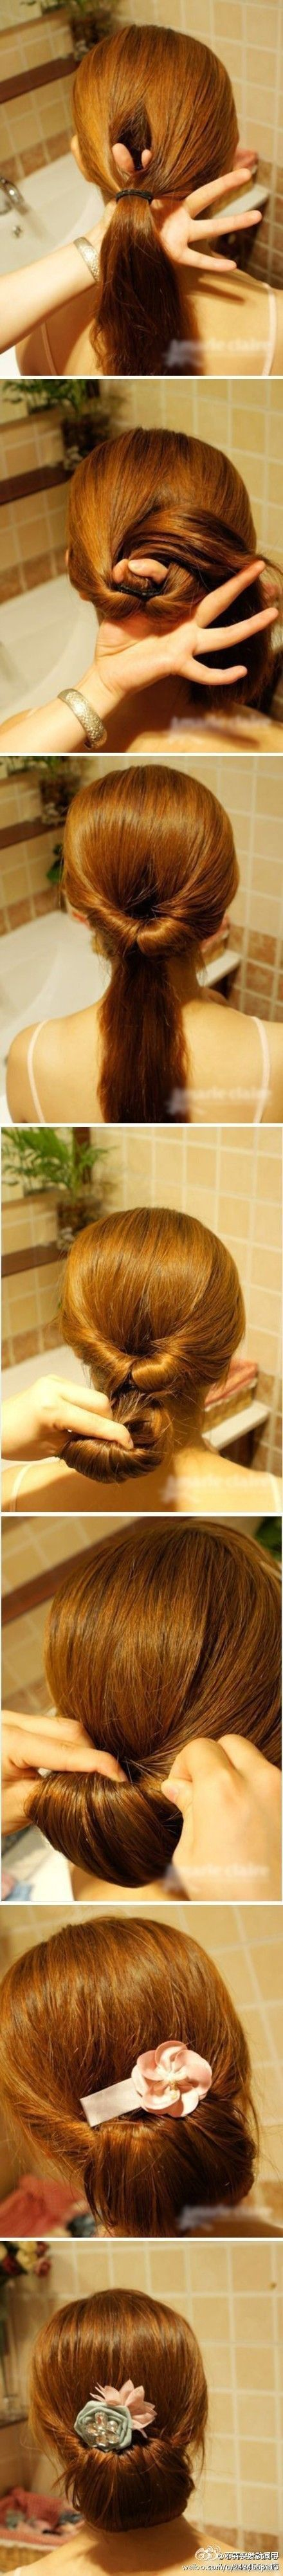 Hair style to try!